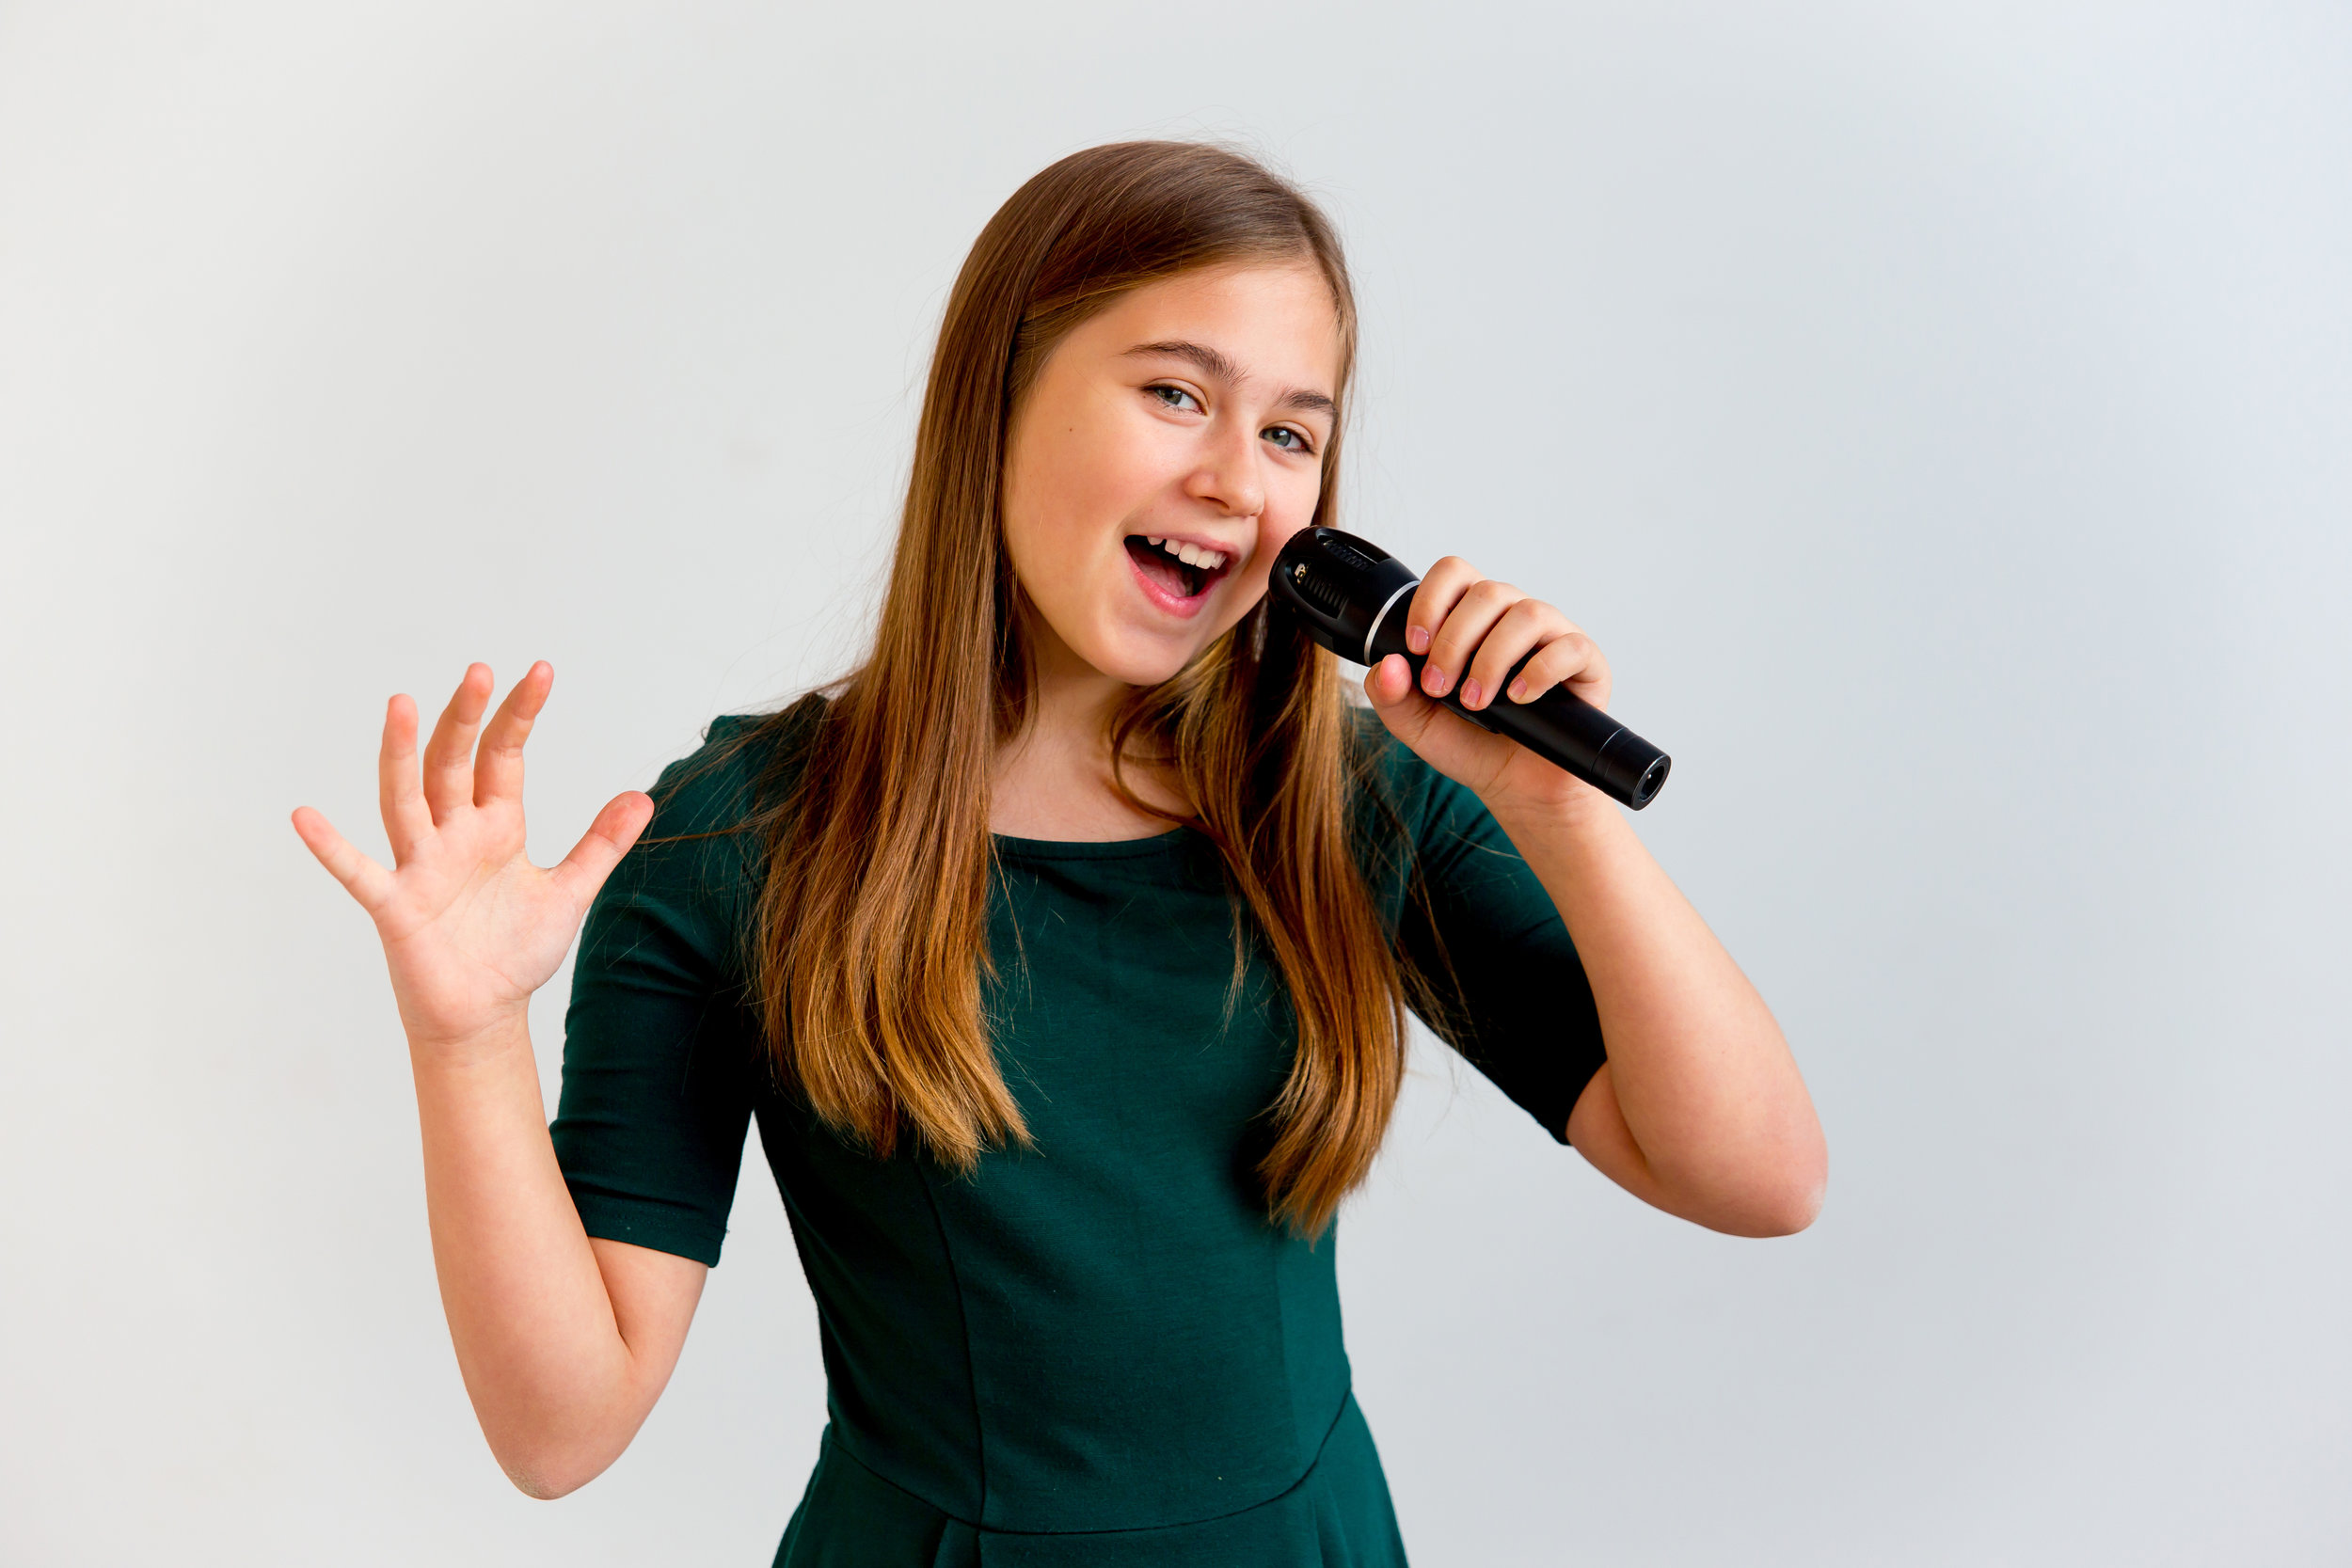 Singing has been scientifically proven to make you happier and improve your mood!